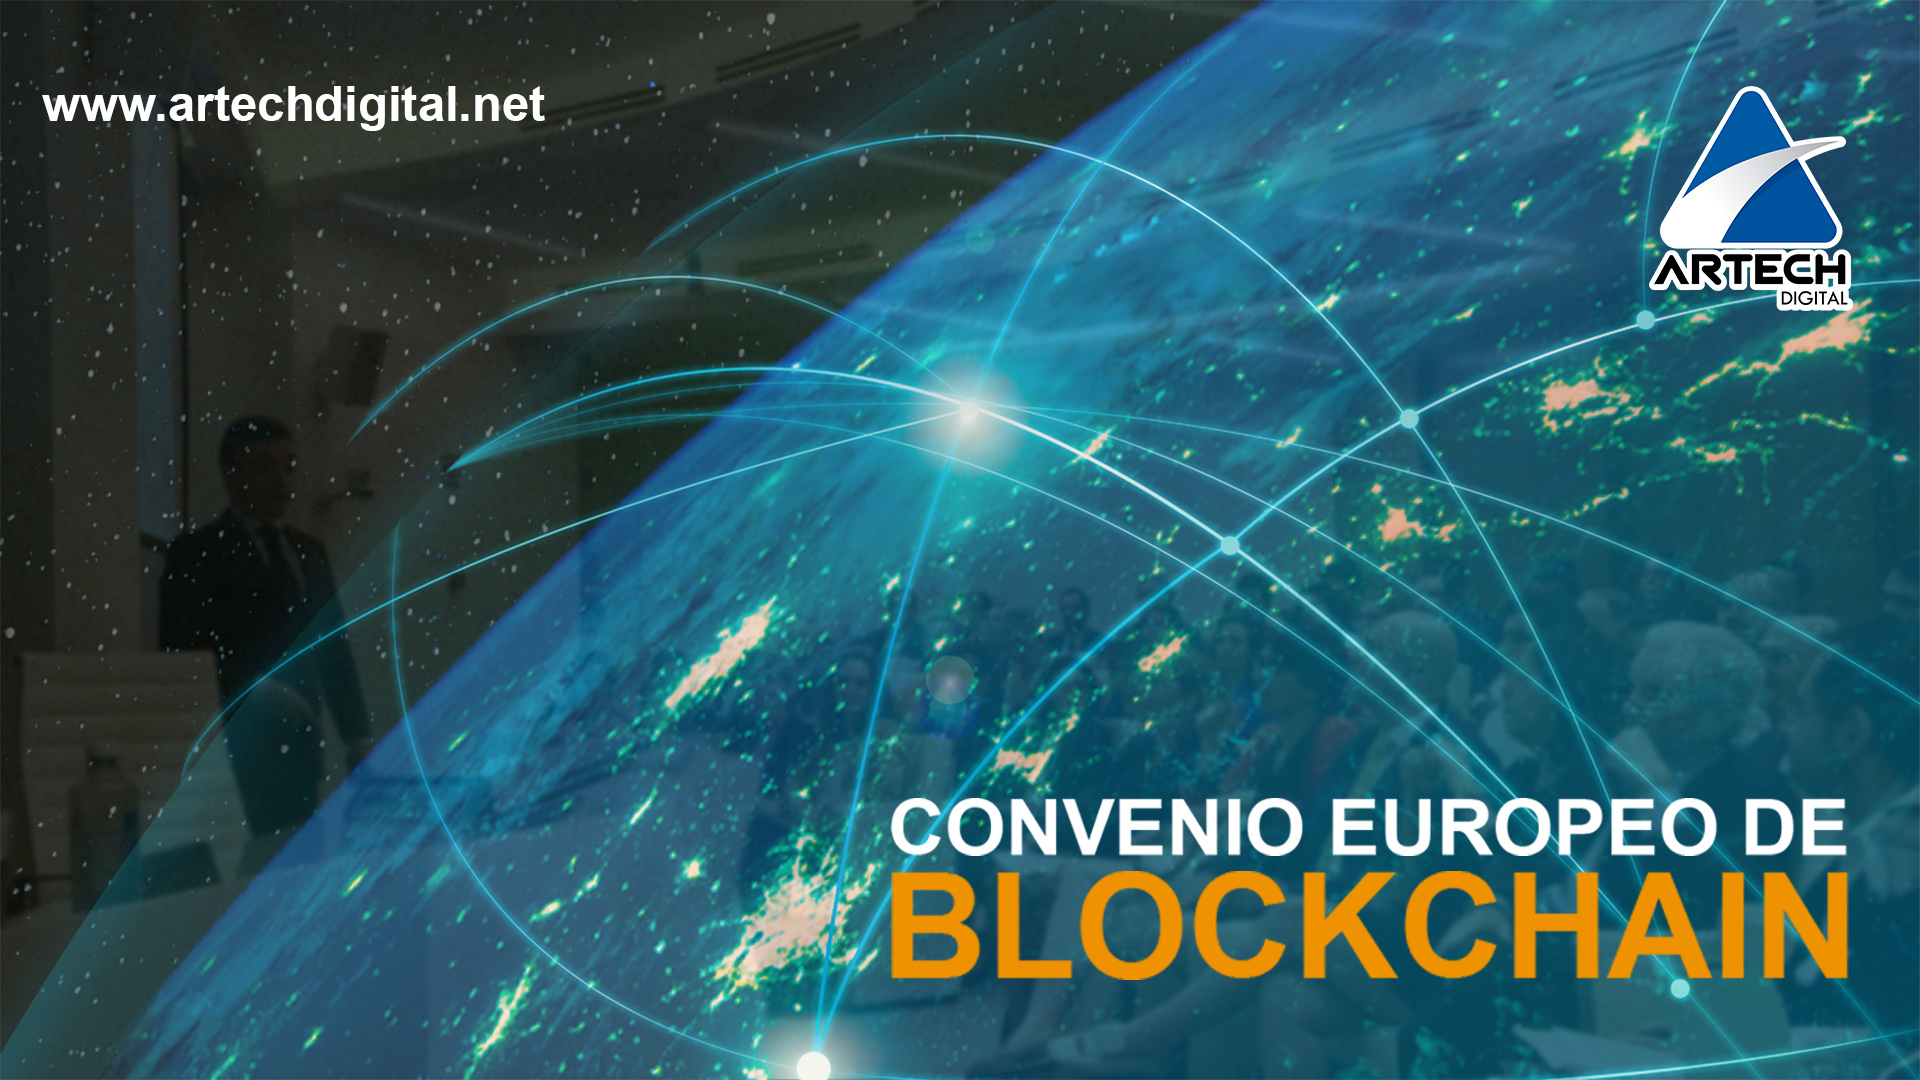 Convenio europeo de Blockchain - Artech Digital